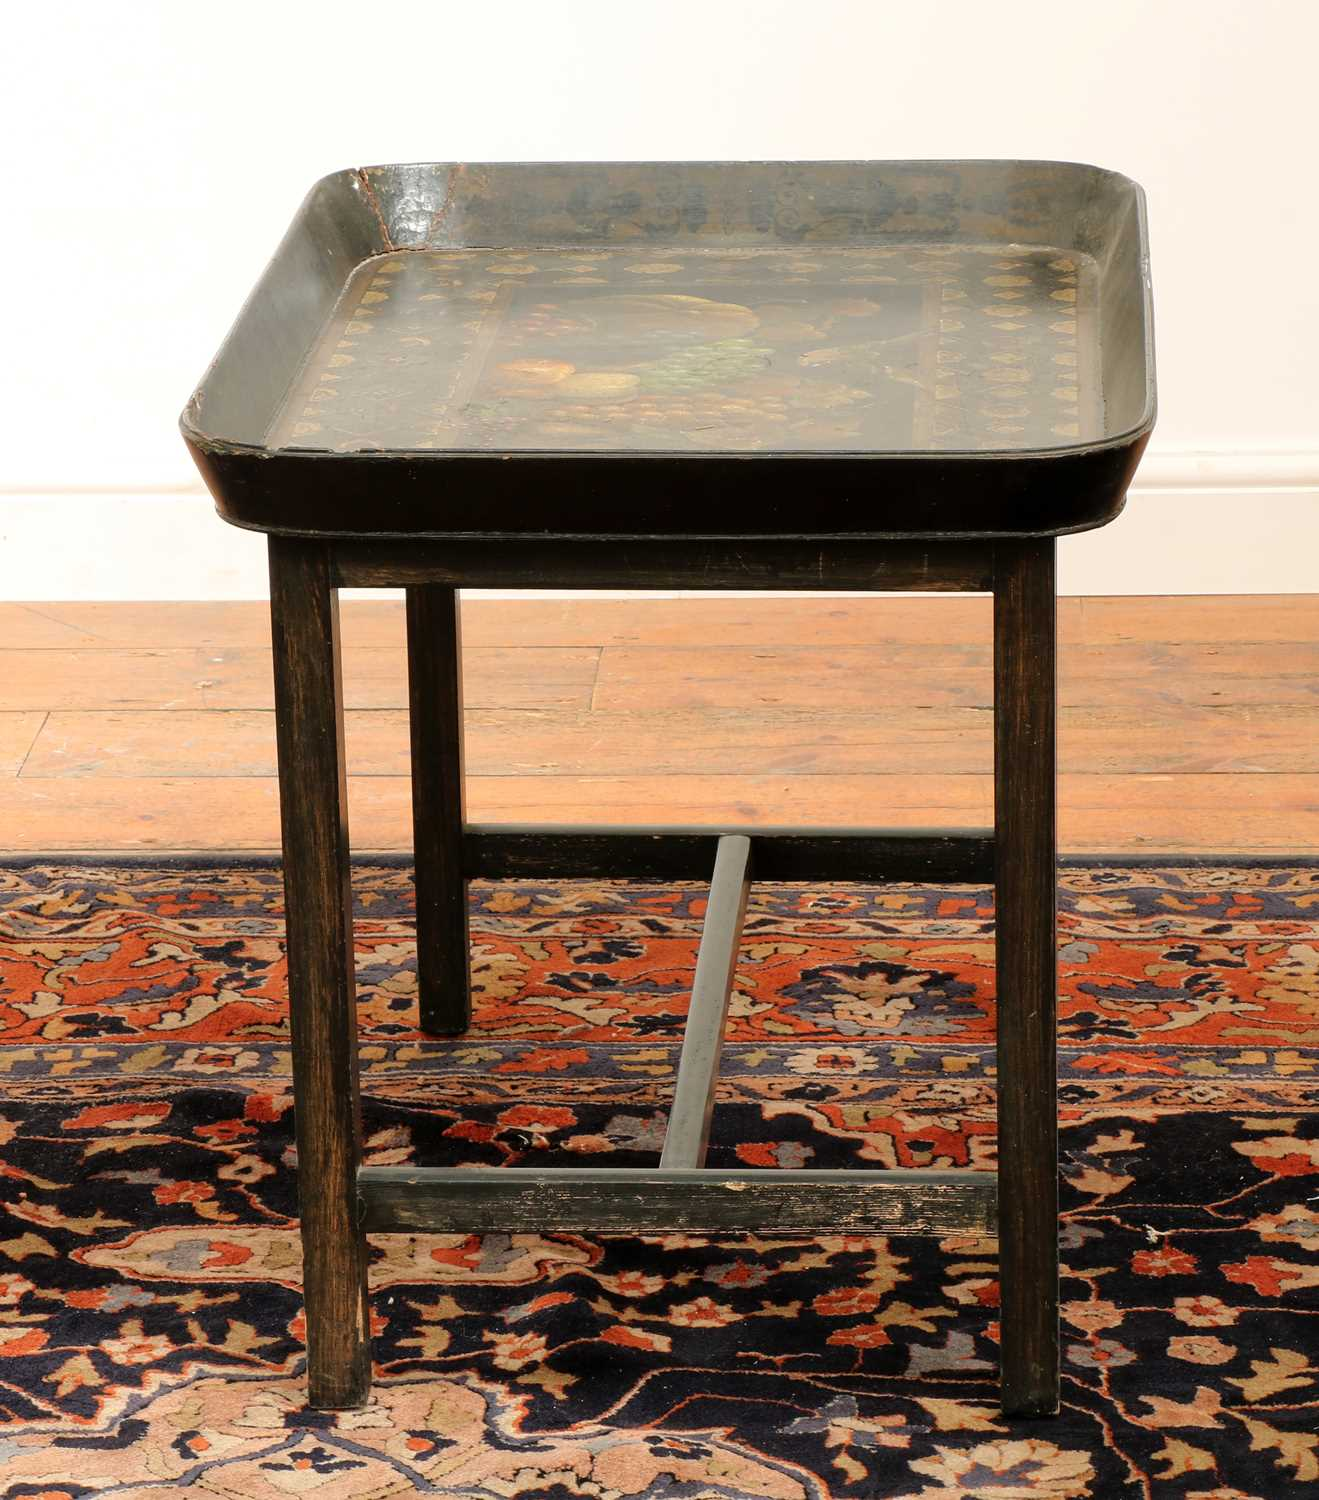 A Regency black lacquer galleried tray on stand, - Image 5 of 5